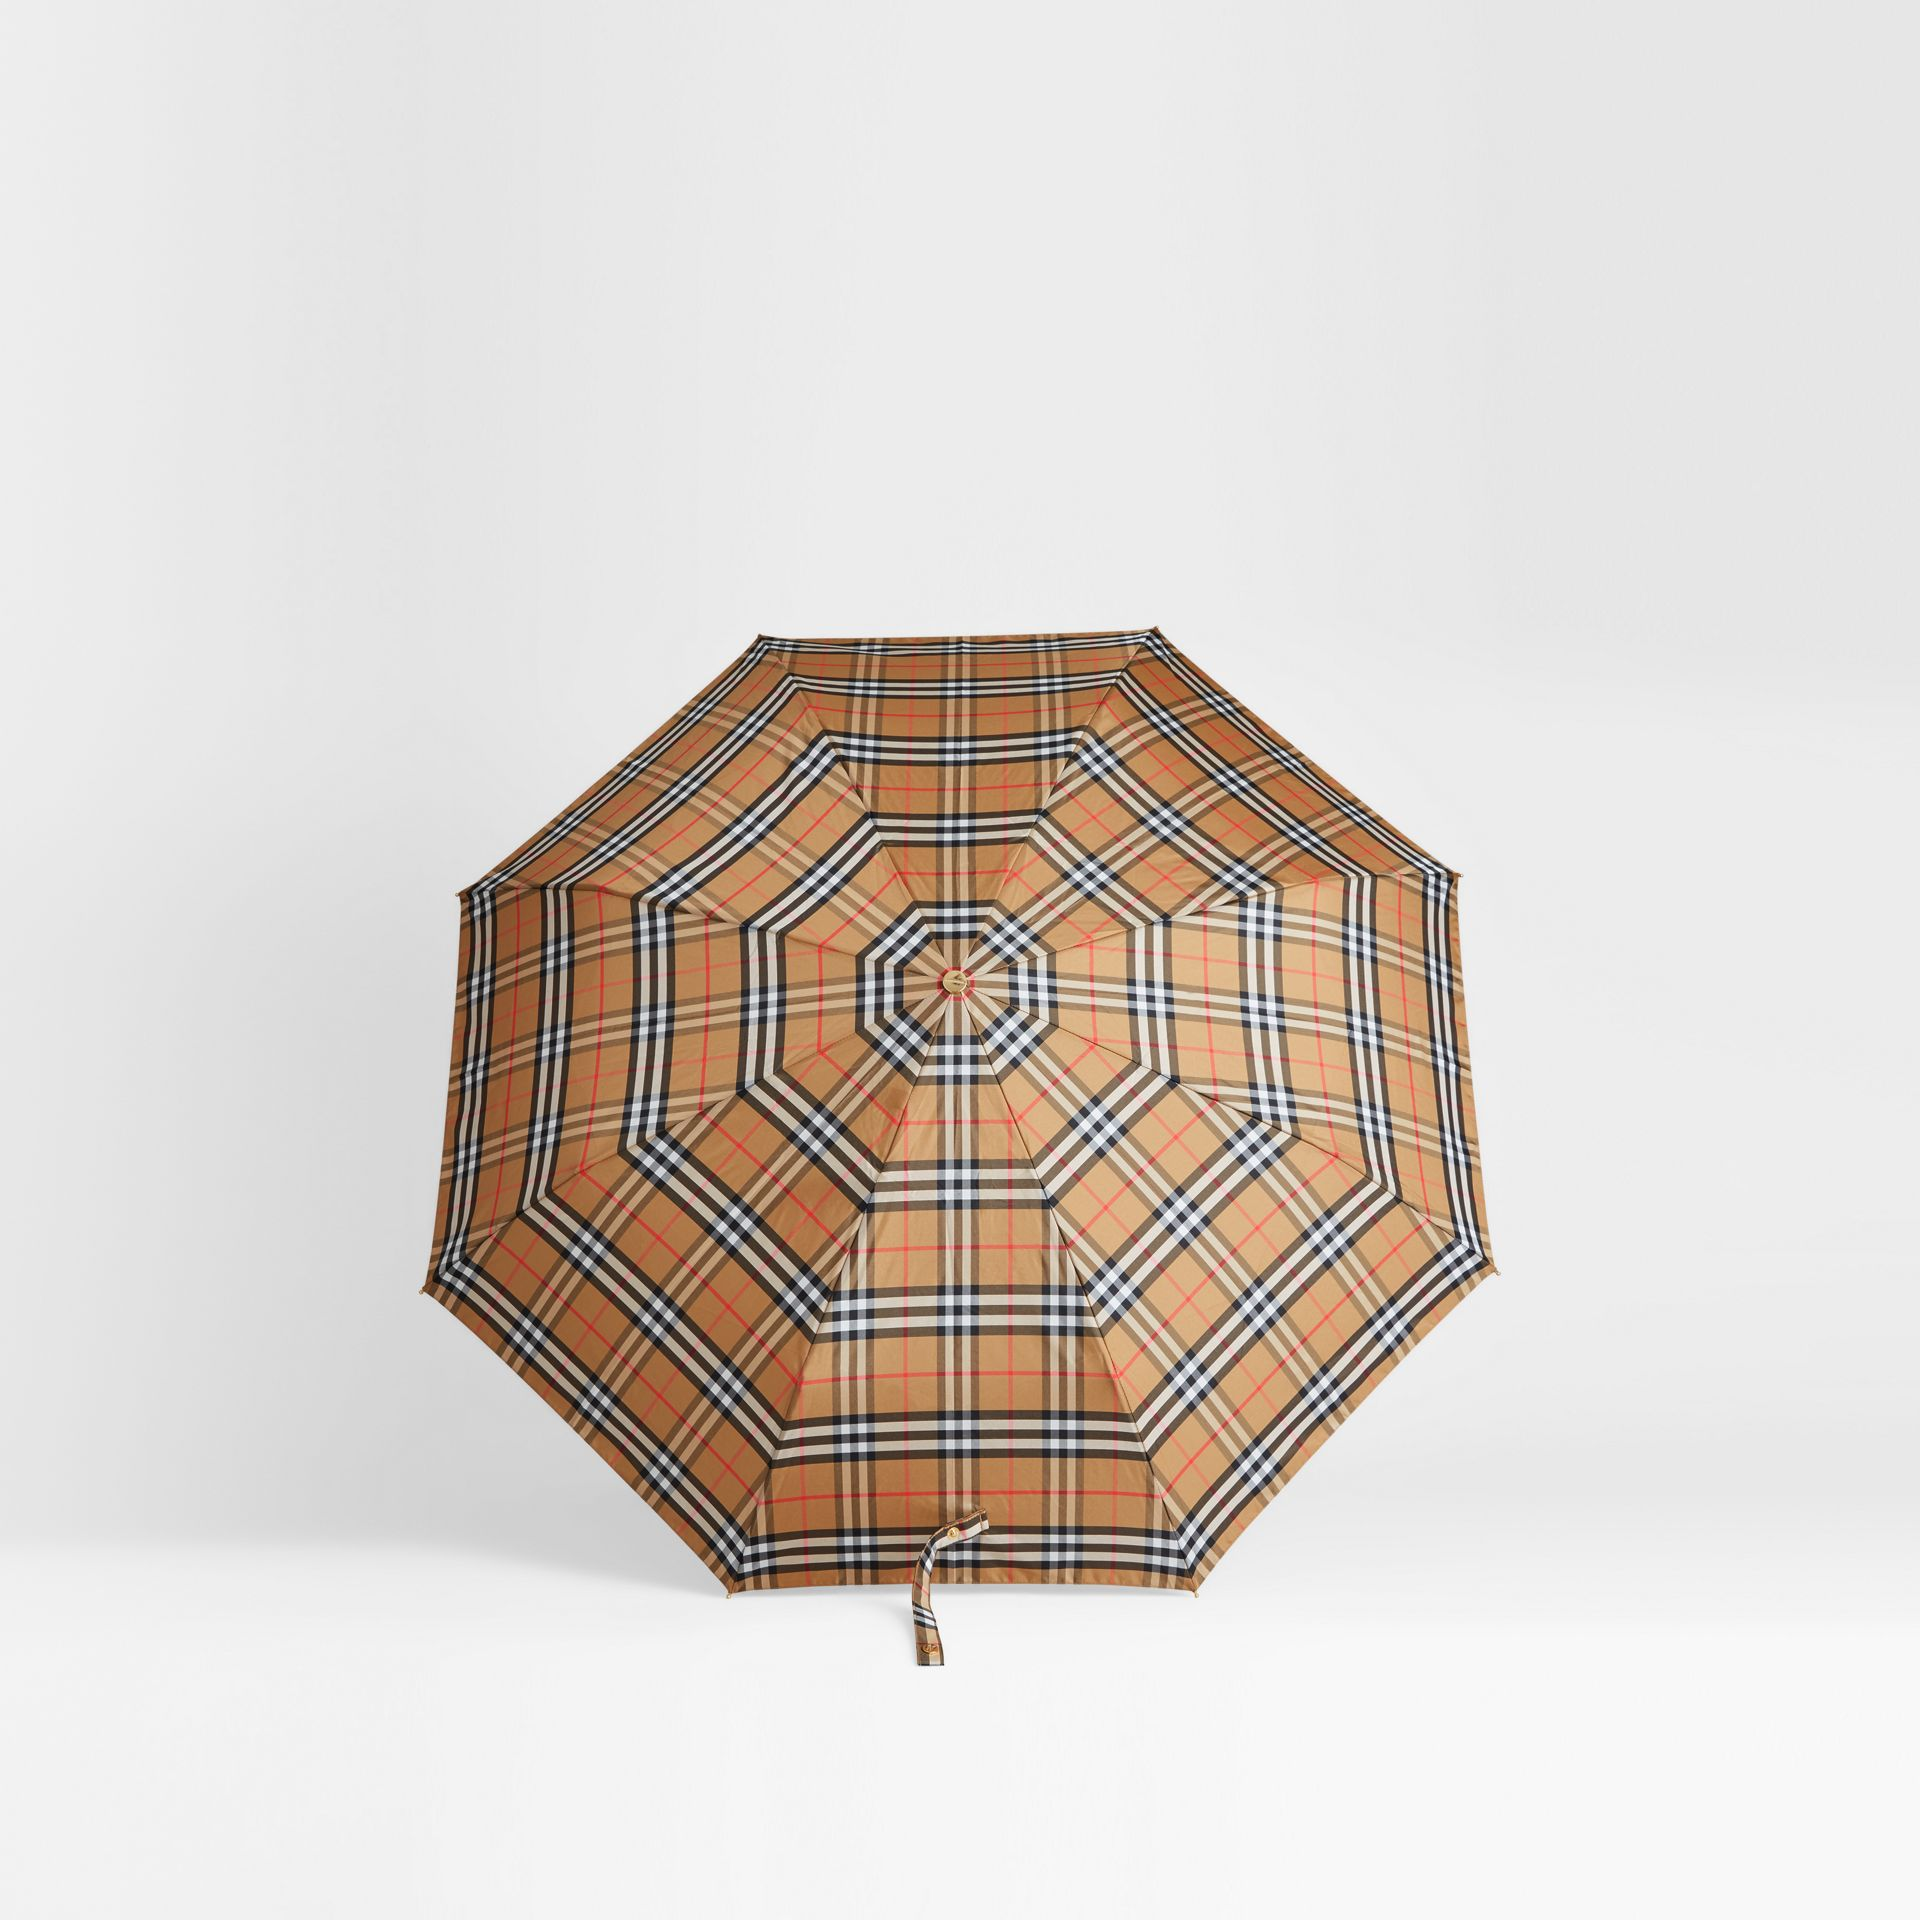 Parapluie télescopique à motif Vintage check (Jaune Antique/miel) | Burberry - photo de la galerie 2